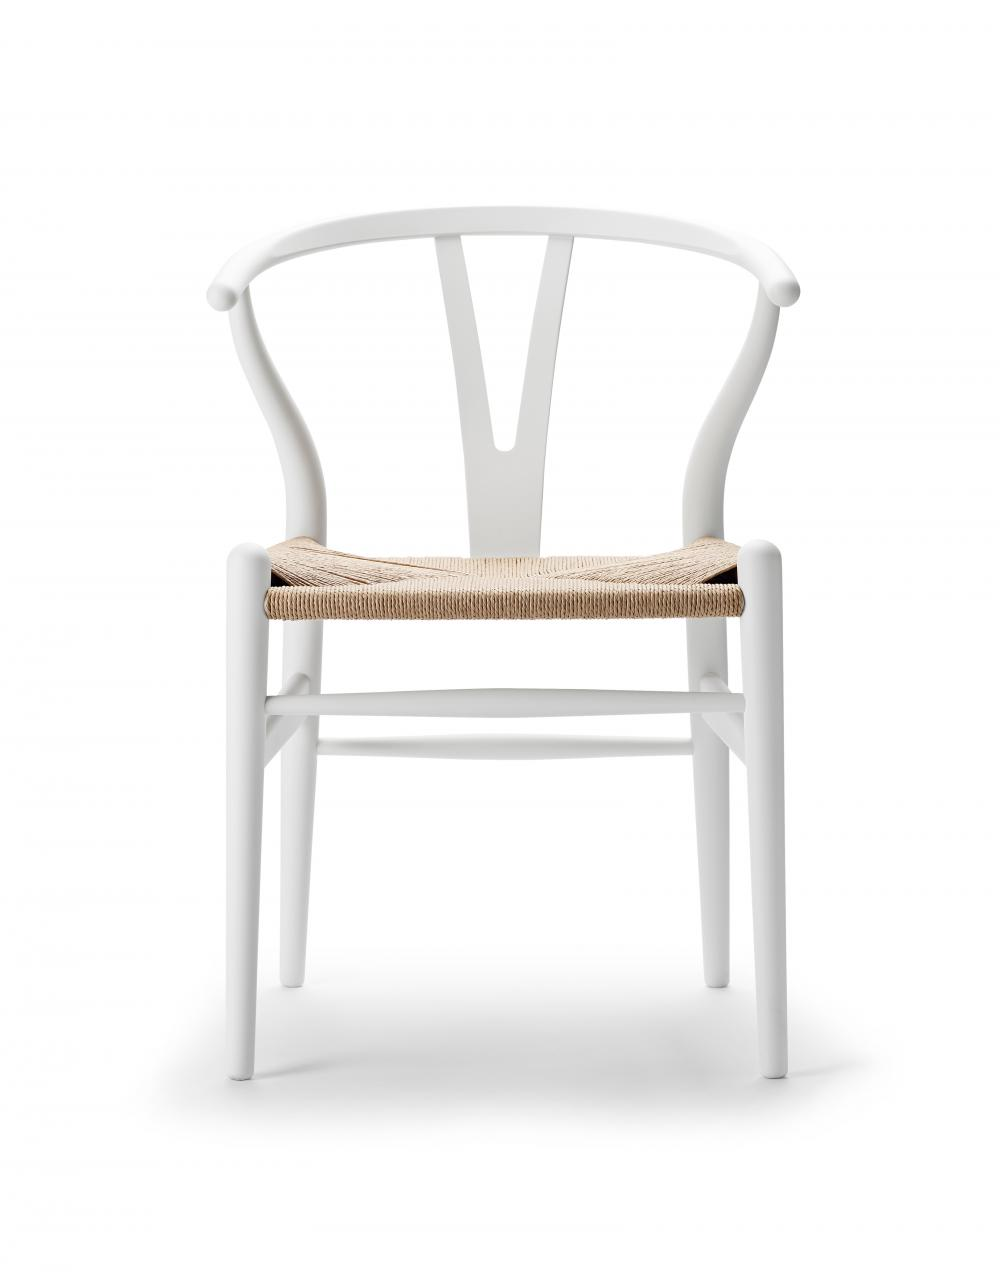 Special Edition CH24 Wishbone chair - Soft Edition